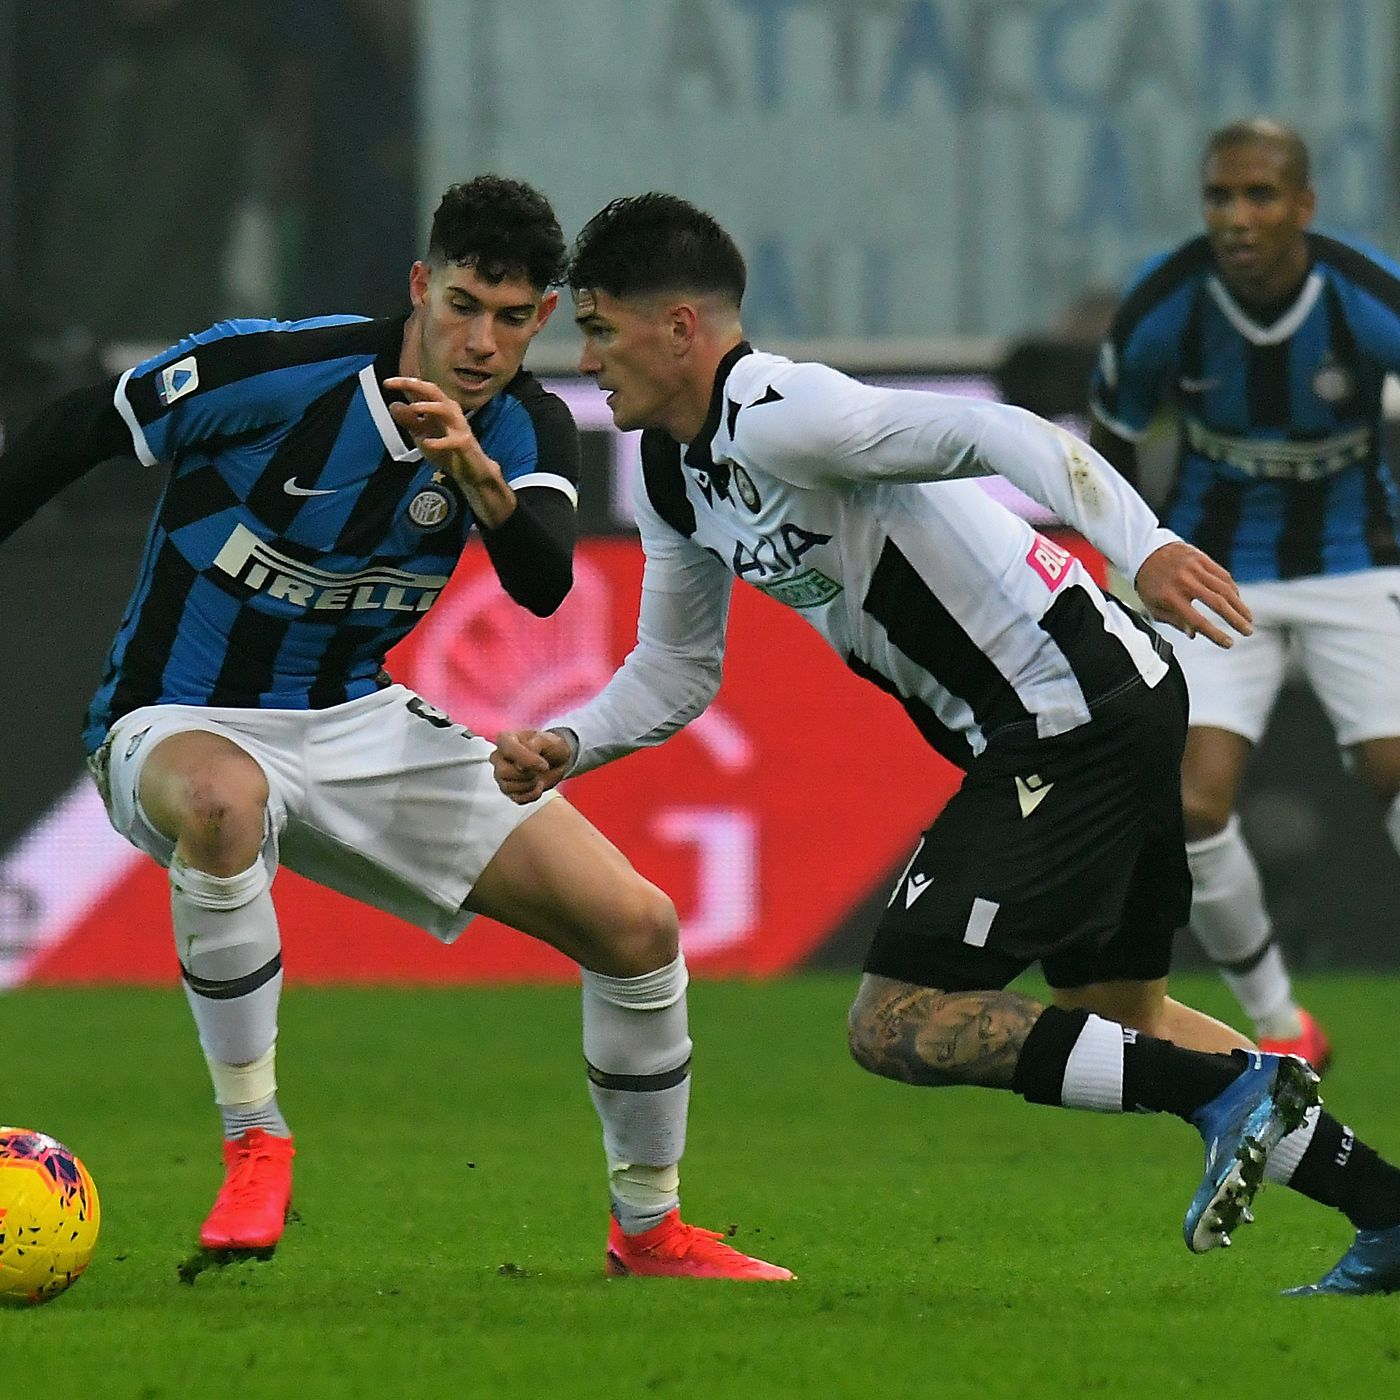 Udinese inter betting preview goal iwac betting term meaning toward the head